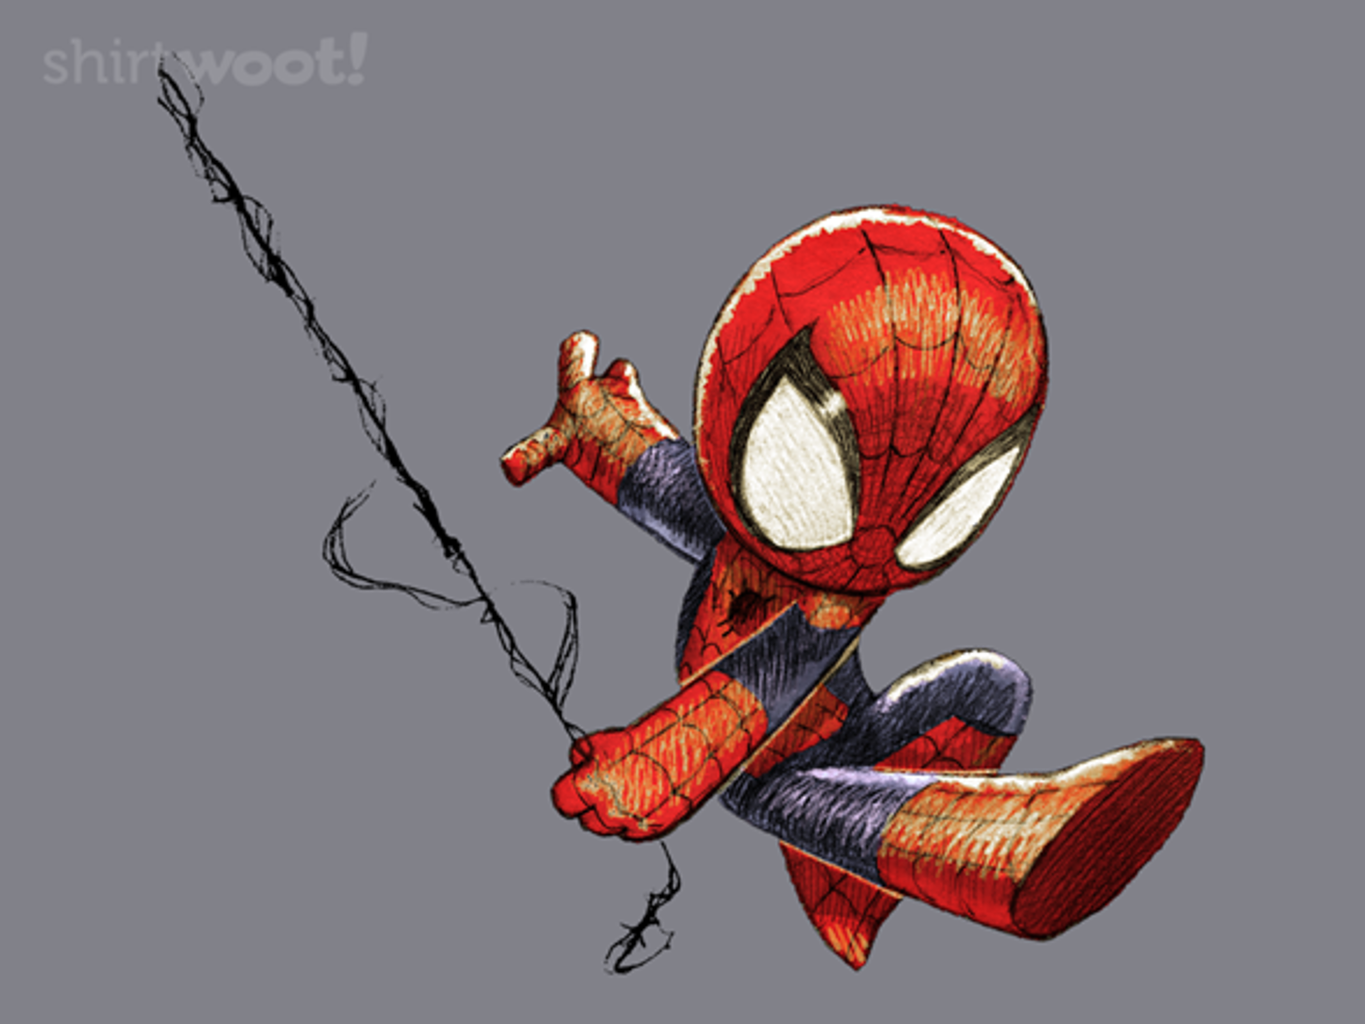 Woot!: Spidey Swing